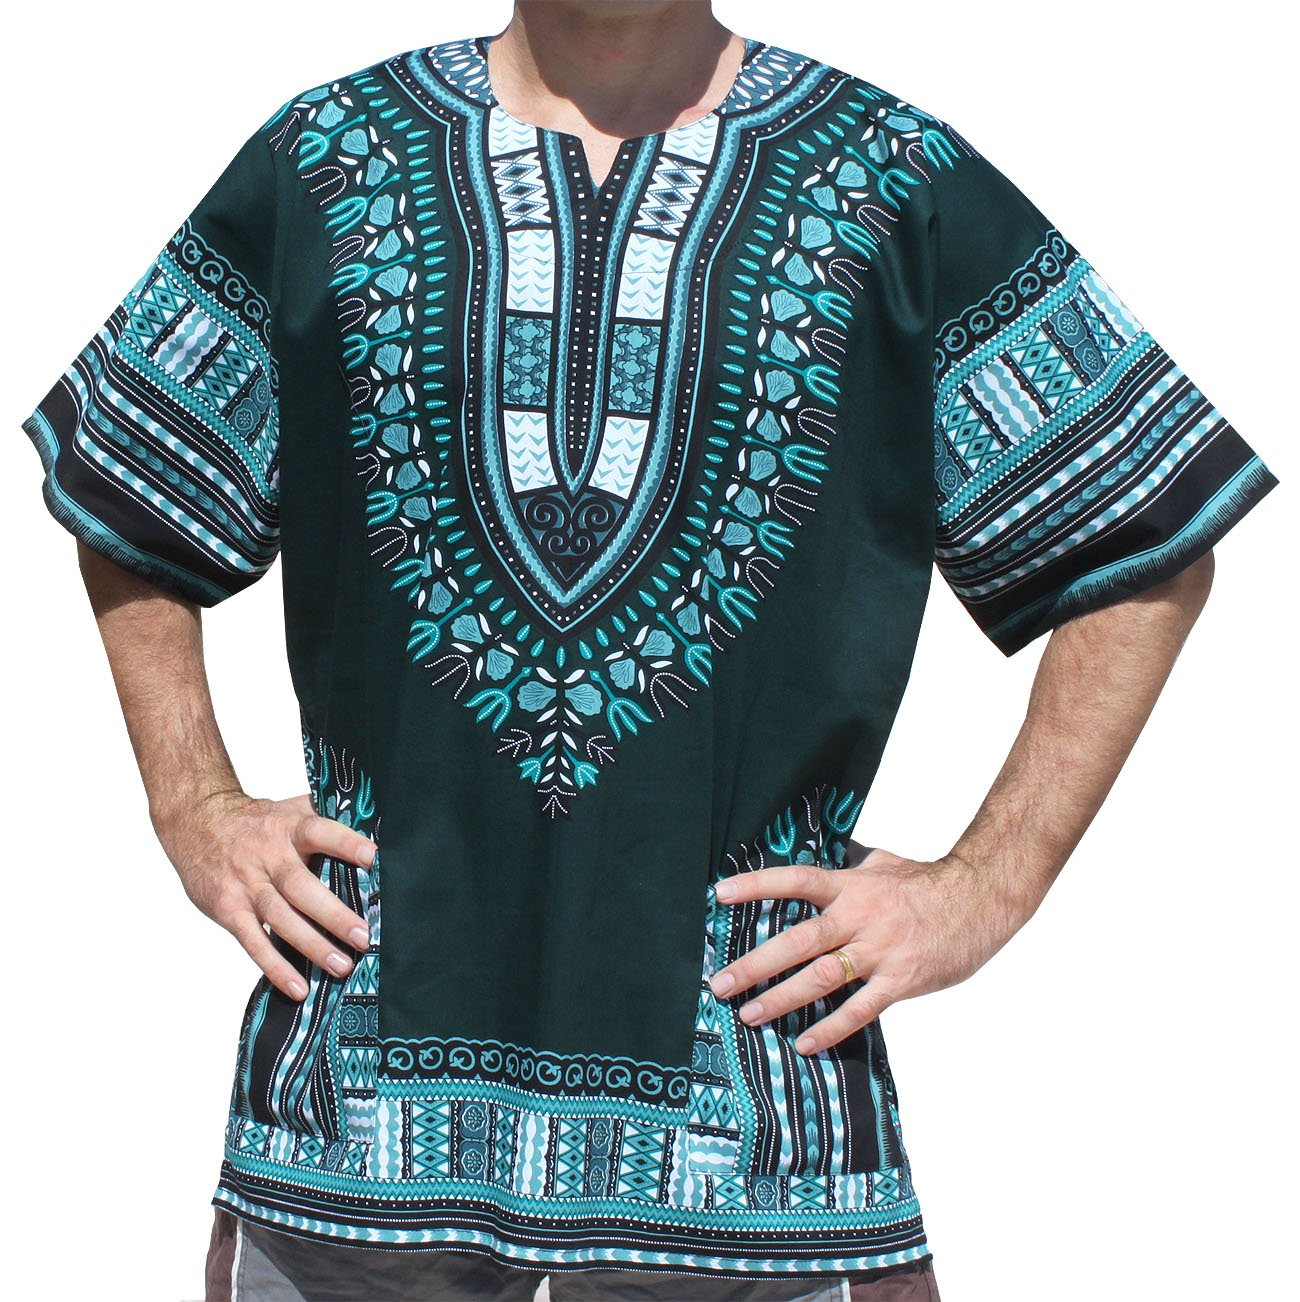 RaanPahMuang Unisex Bright Coloured African Dashiki Cotton Plus Shirt, XXX-Large, Phthalo Green by Raan Pah Muang (Image #1)